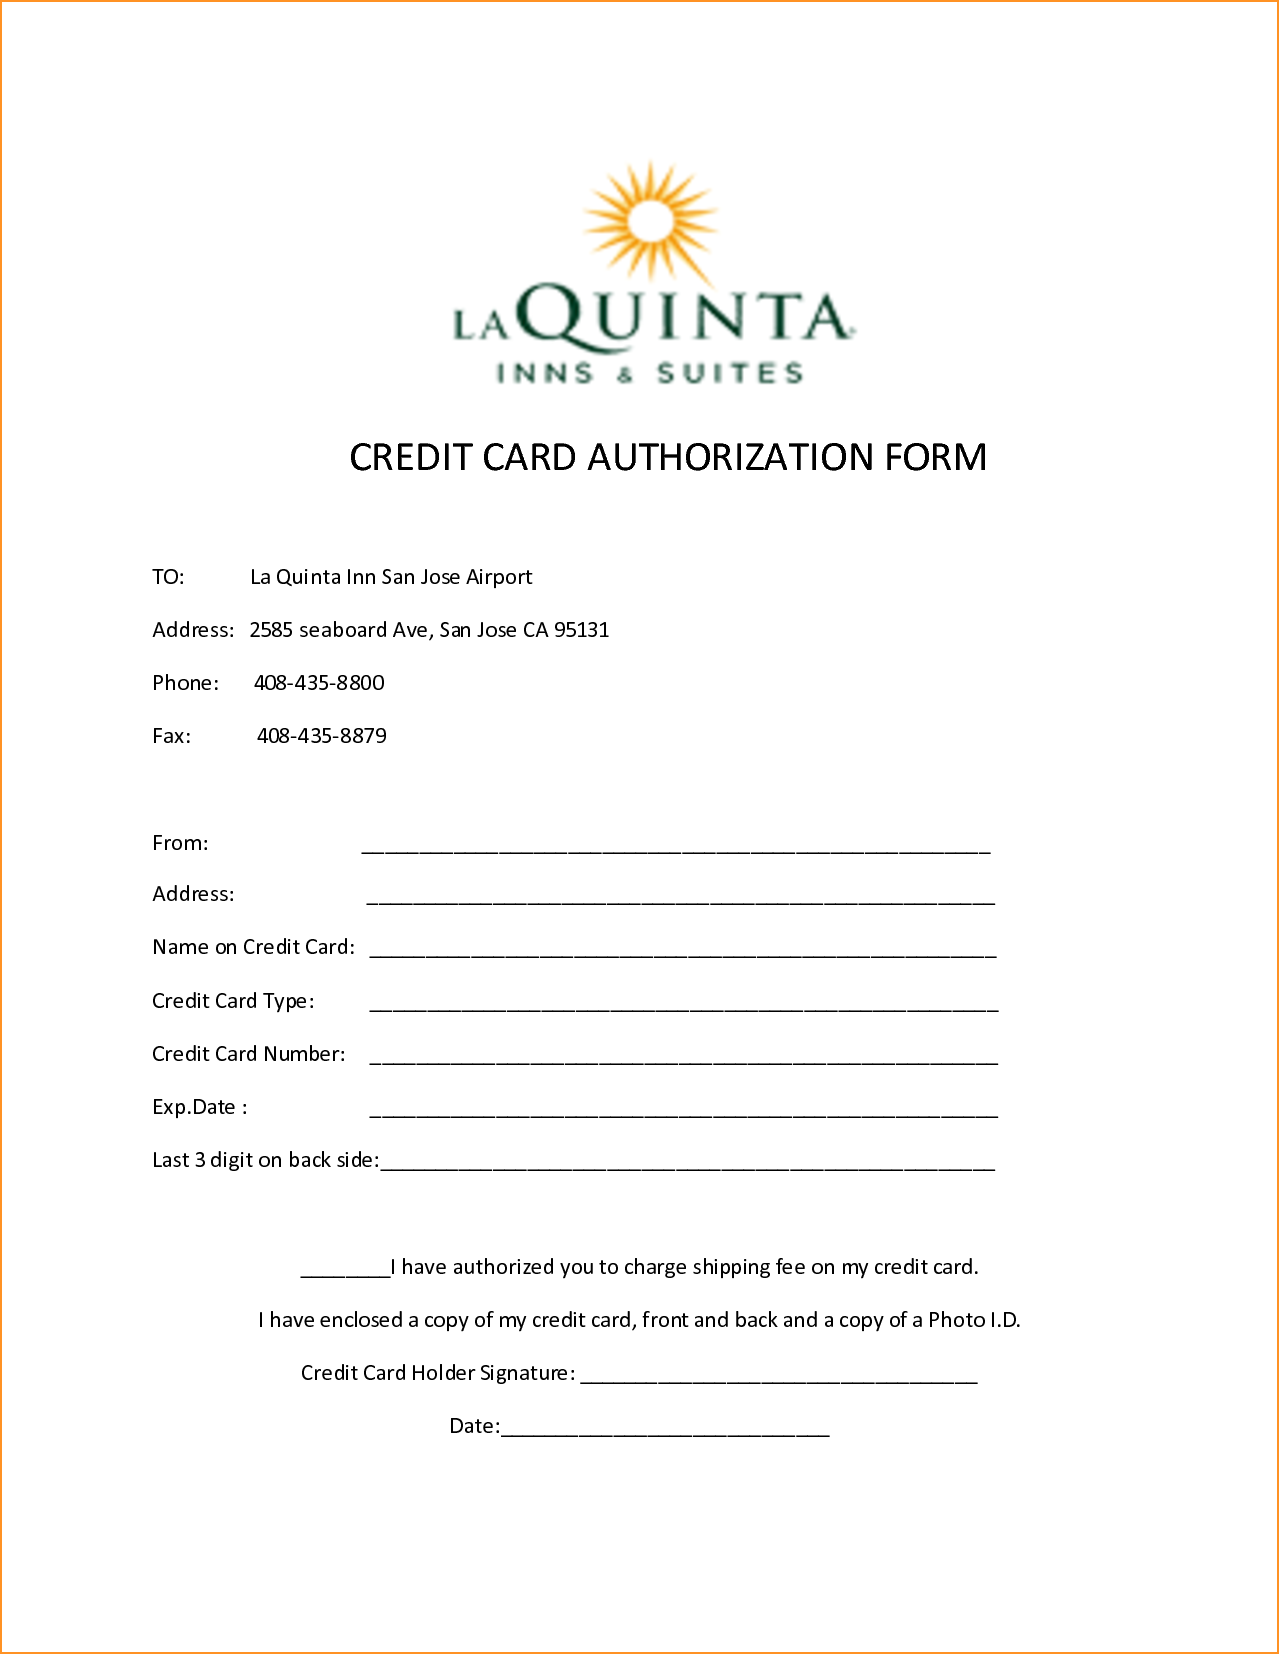 Hotel Credit Card Authorization Formpng Manager Resume - Credit card authorization form template word